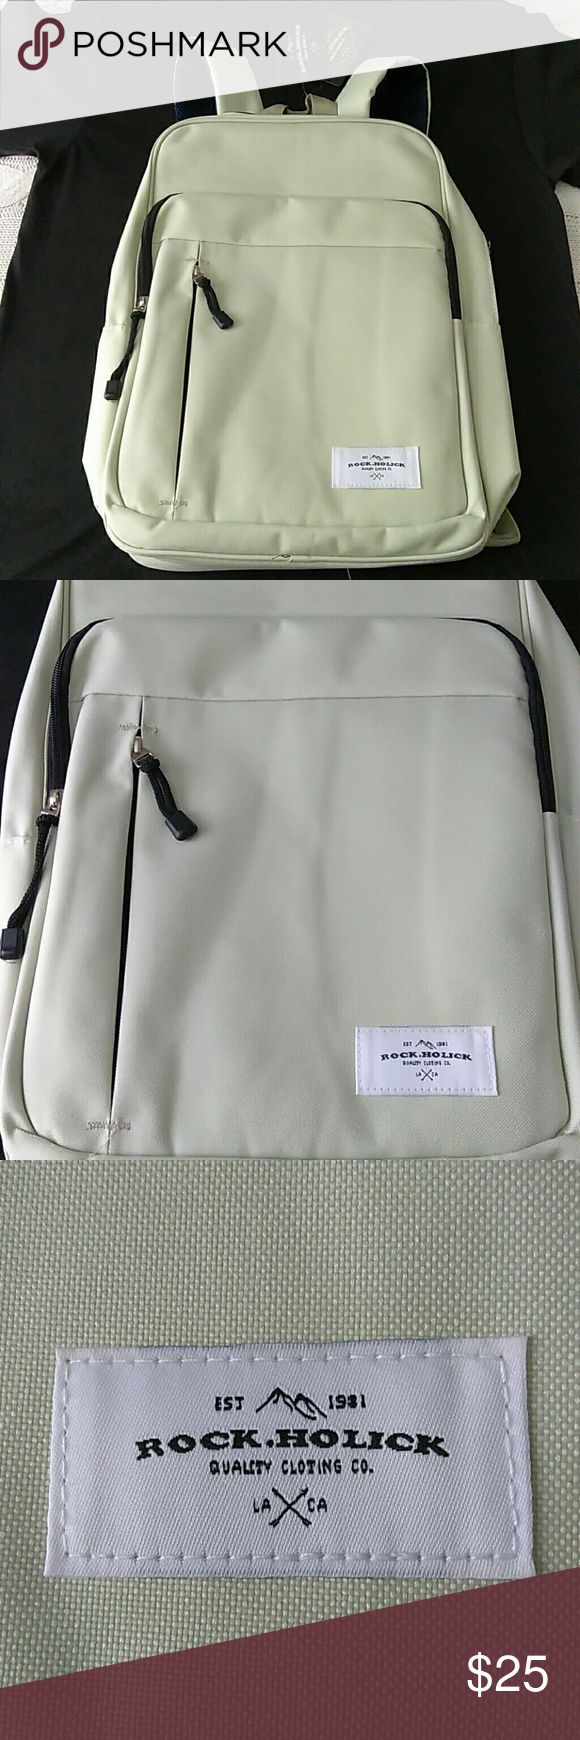 New Rock Holick Backpack New Rock Holick Backpack. Padded laptop sleeve. Super sleek, classic style. A subtle mint-greenish grayish color with black zipper detailing. Such a classy backpack! Rock.Holick Bags